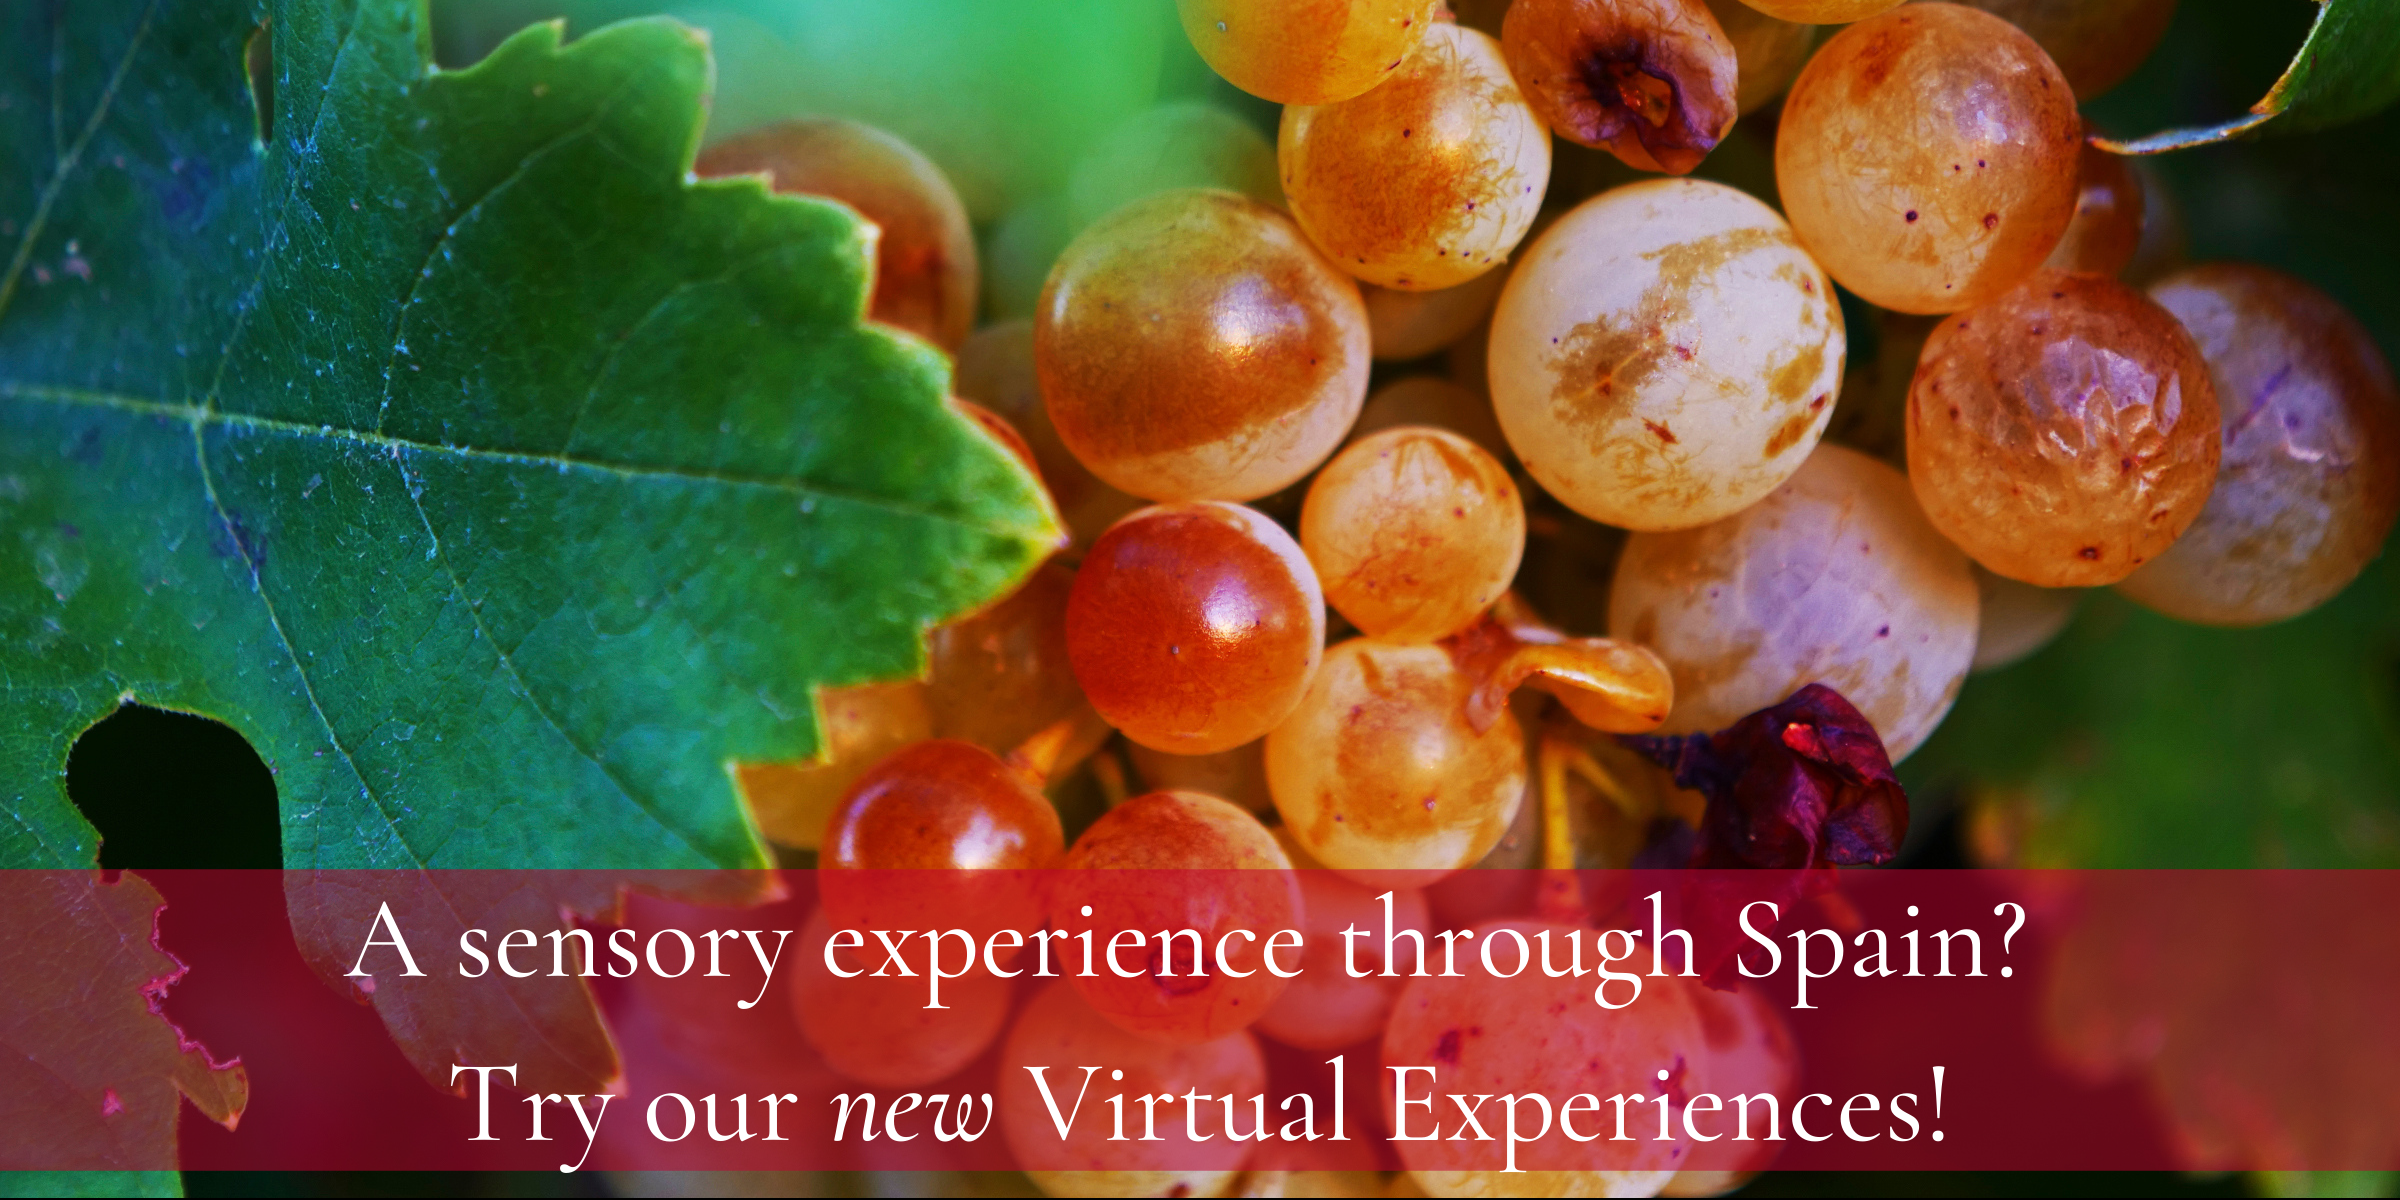 Insiders Travel_ A sensory experience through Spain_ Try our Virtual Experiences